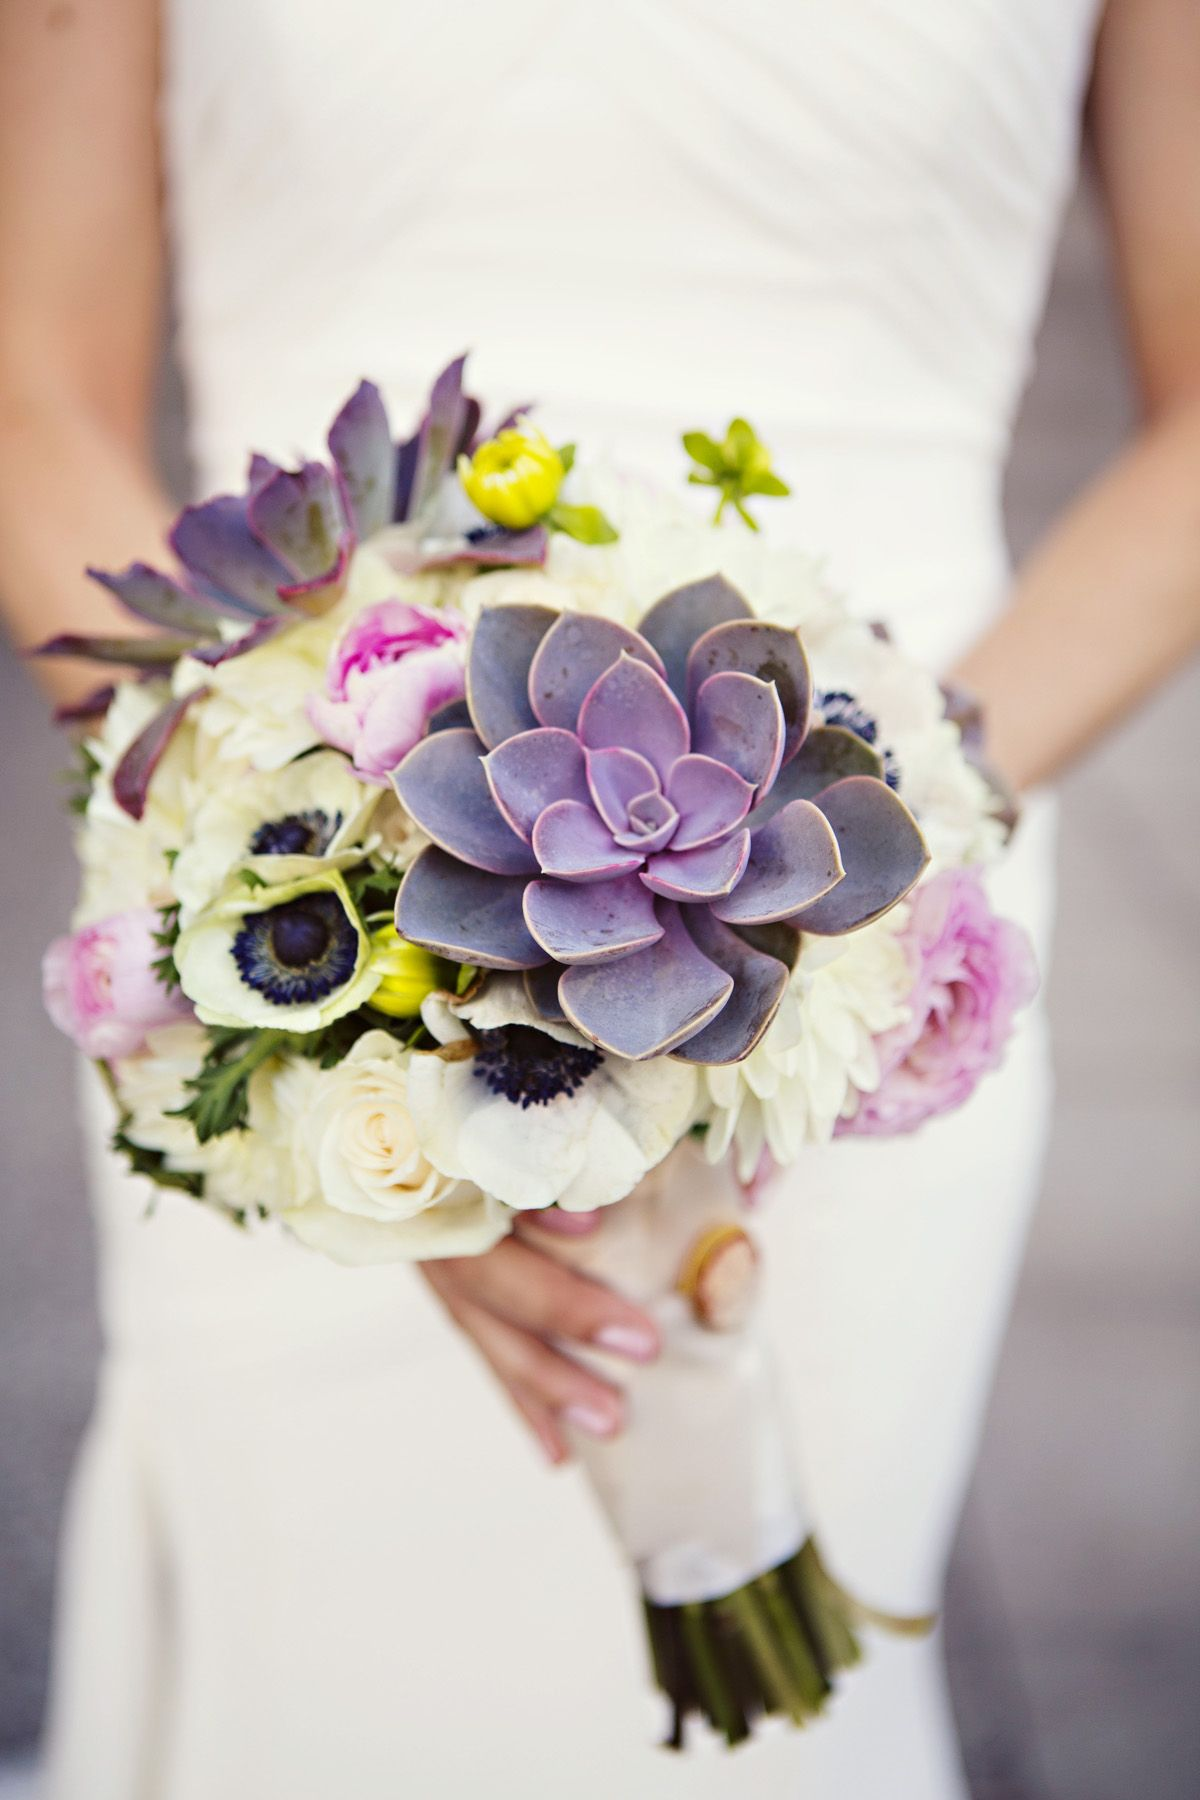 Kate & Company  Wedding Arizona, Jane Z Photography - Bridal #Bouquet in black and white #Anemone and #Succulent by Butterfly Petals